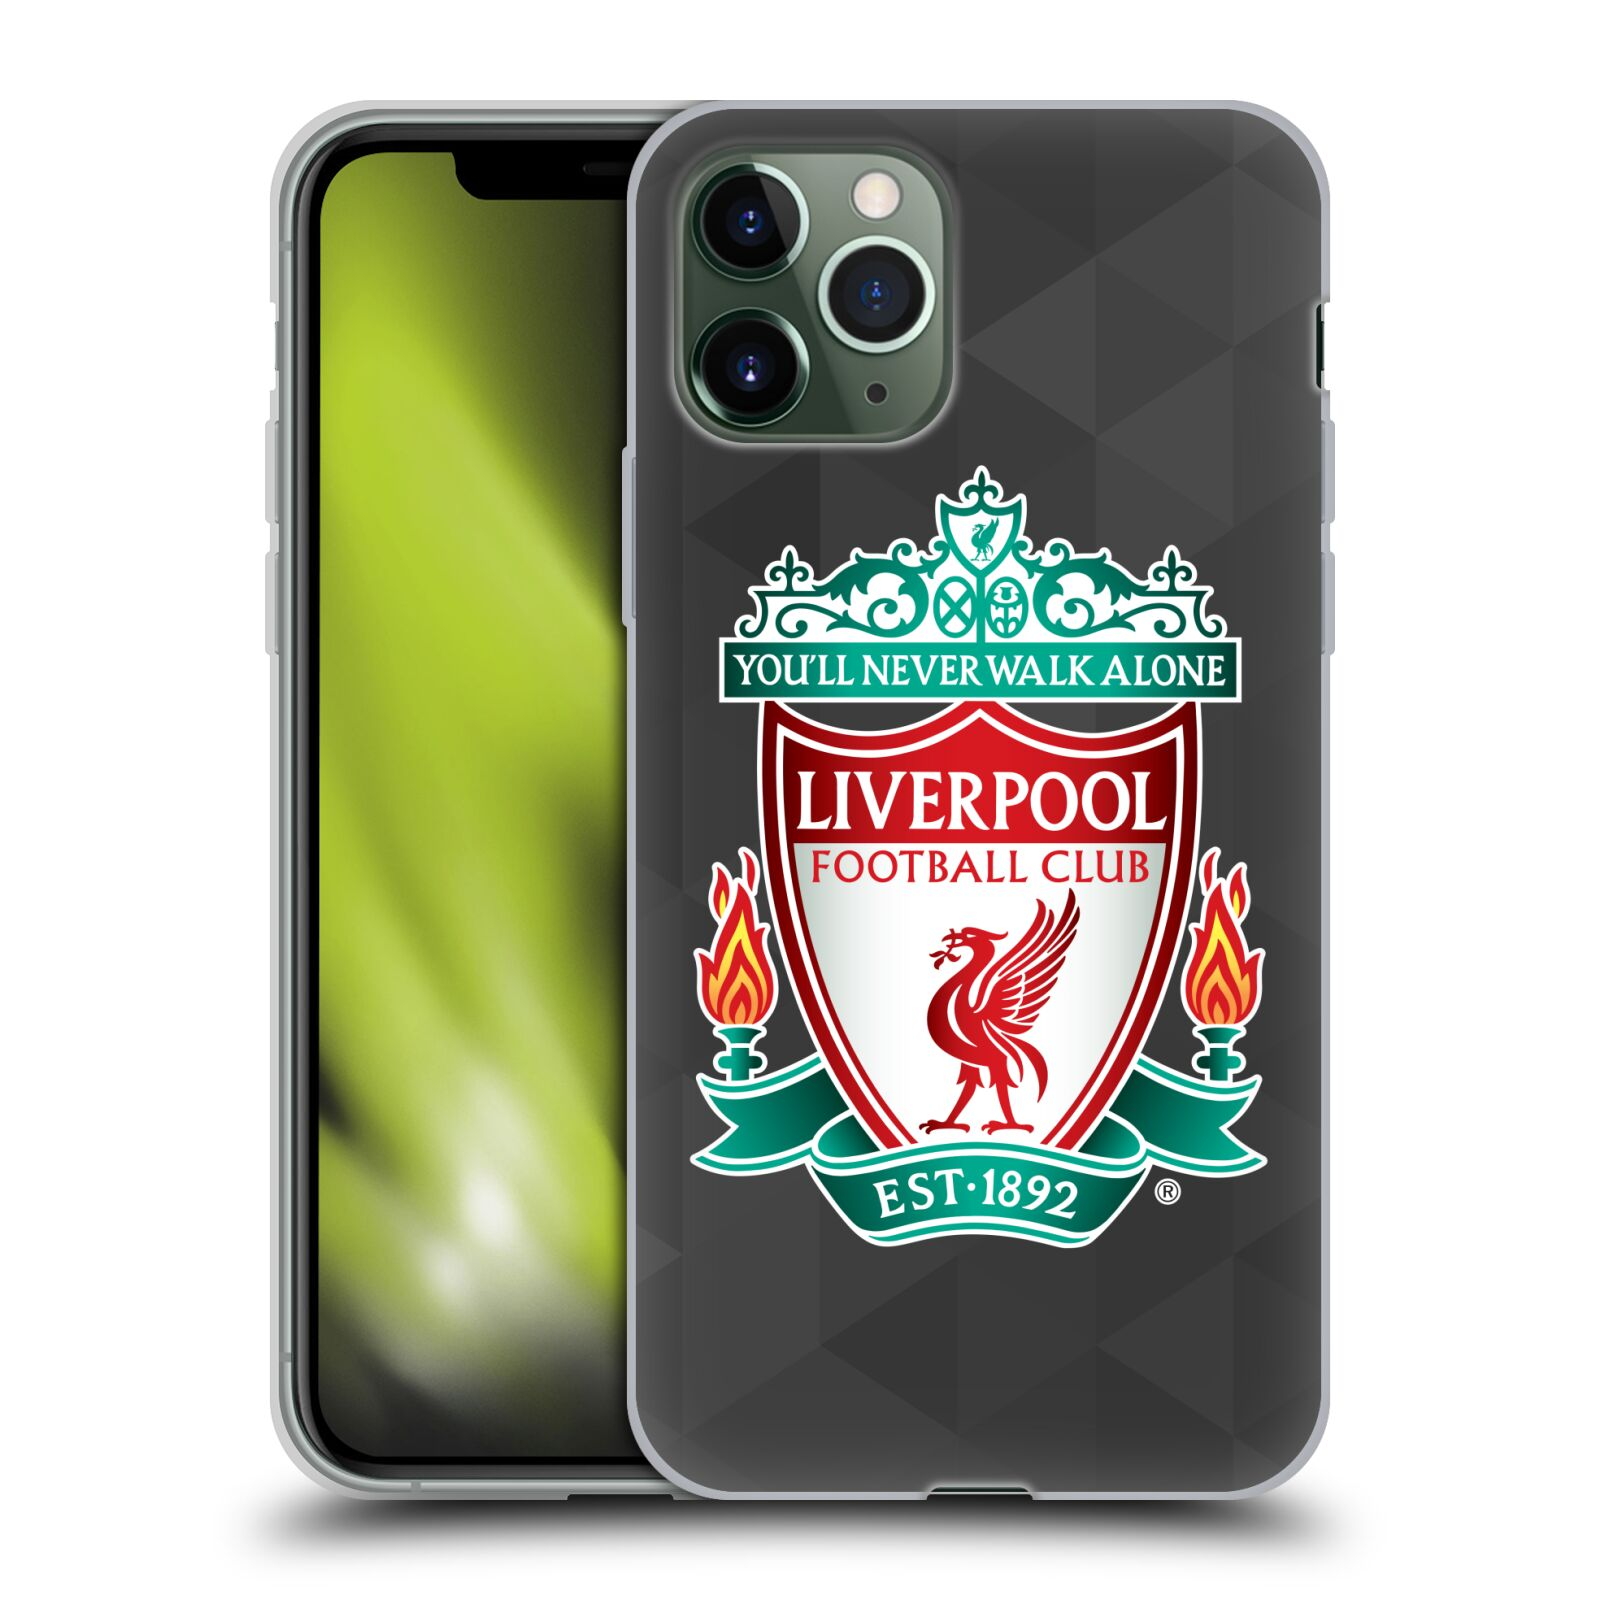 obal na telefon iphone 6 - Silikonové pouzdro na mobil Apple iPhone 11 Pro - Head Case - ZNAK LIVERPOOL FC OFFICIAL GEOMETRIC BLACK